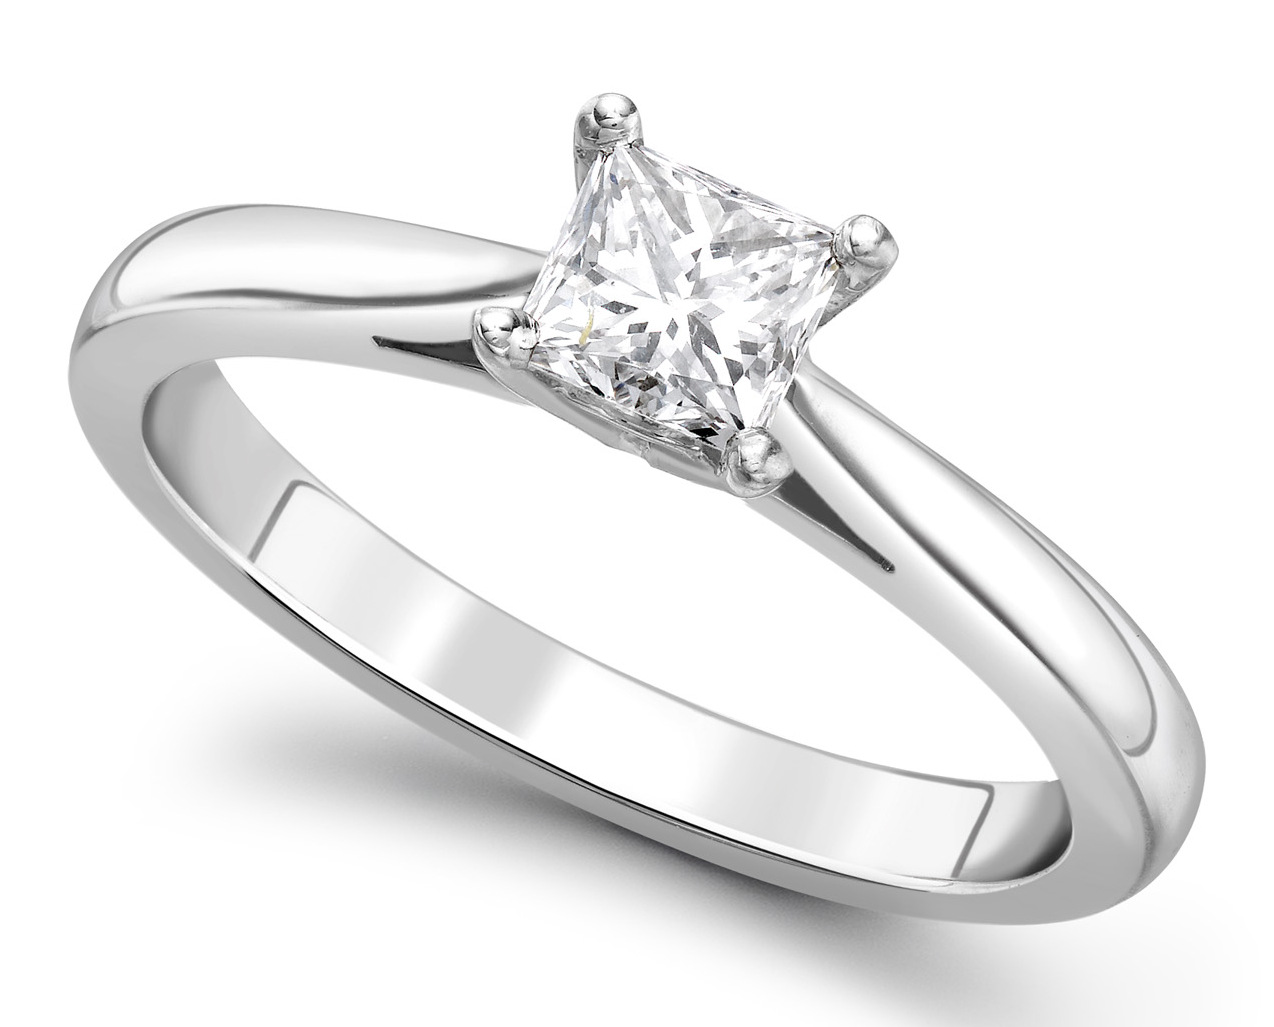 Princess Cut Four Claw White Gold Engagement Ring GRC651 Main Image